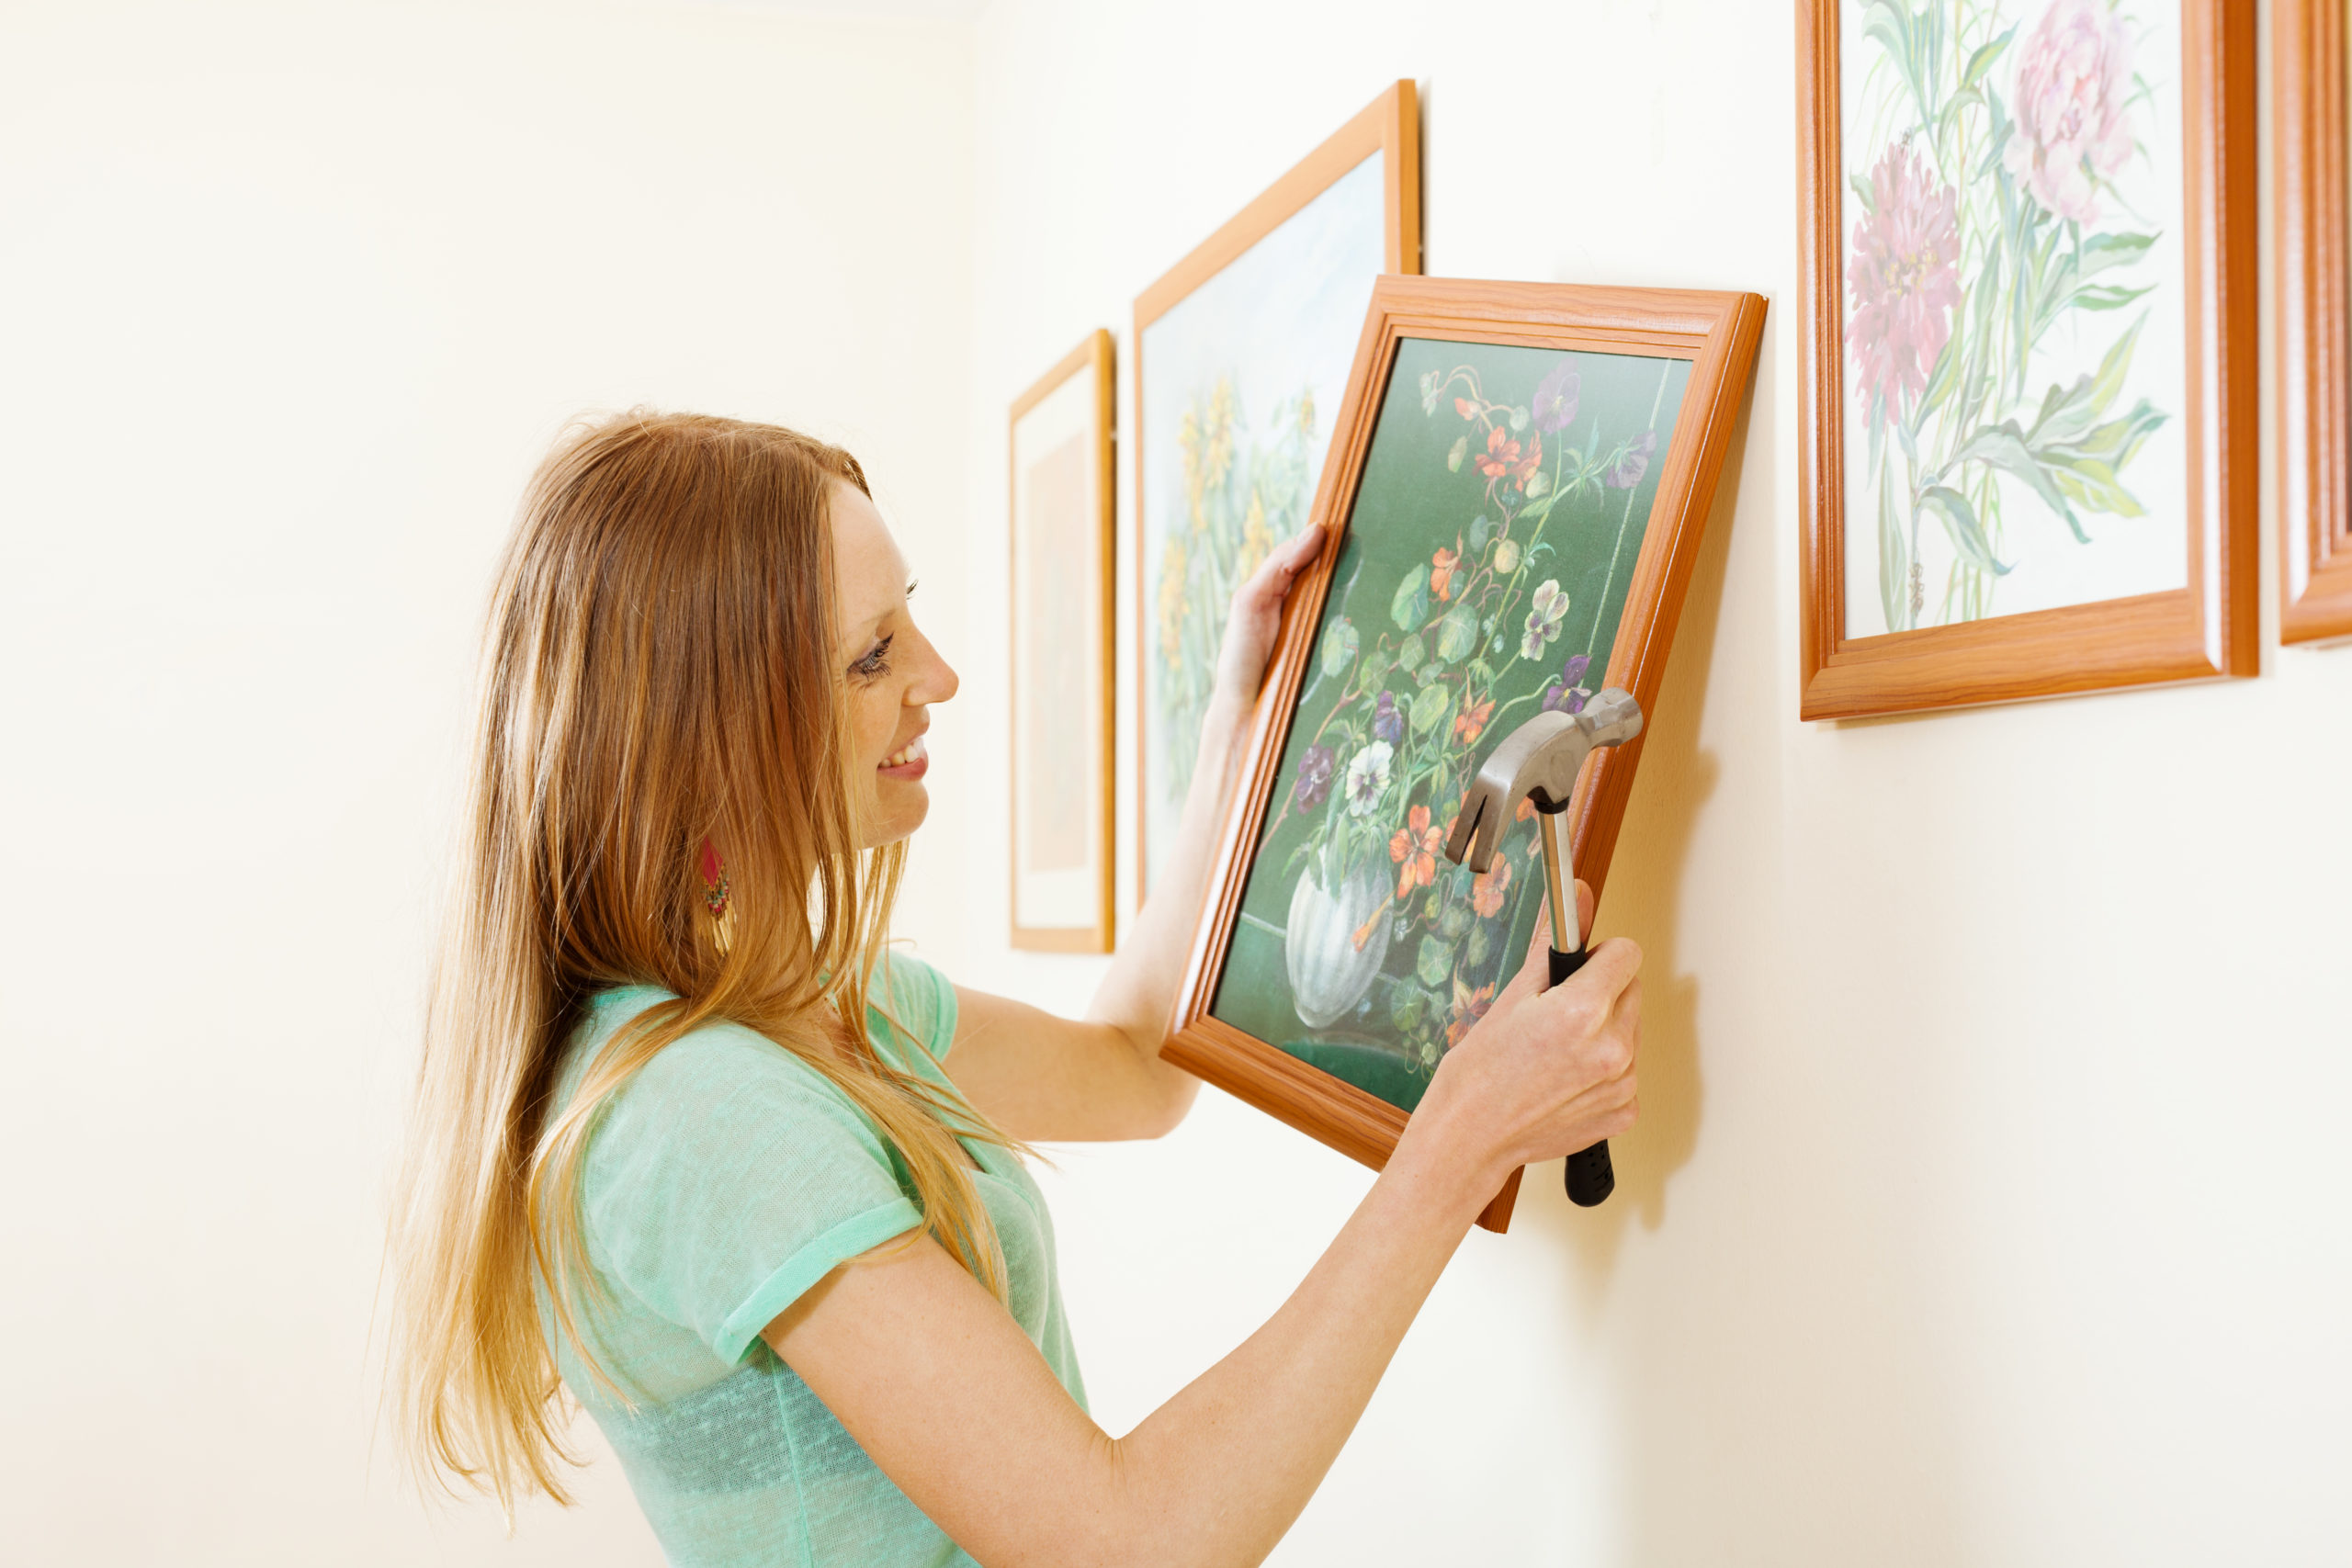 Smiling blonde woman hanging painting with flowers on wall at home